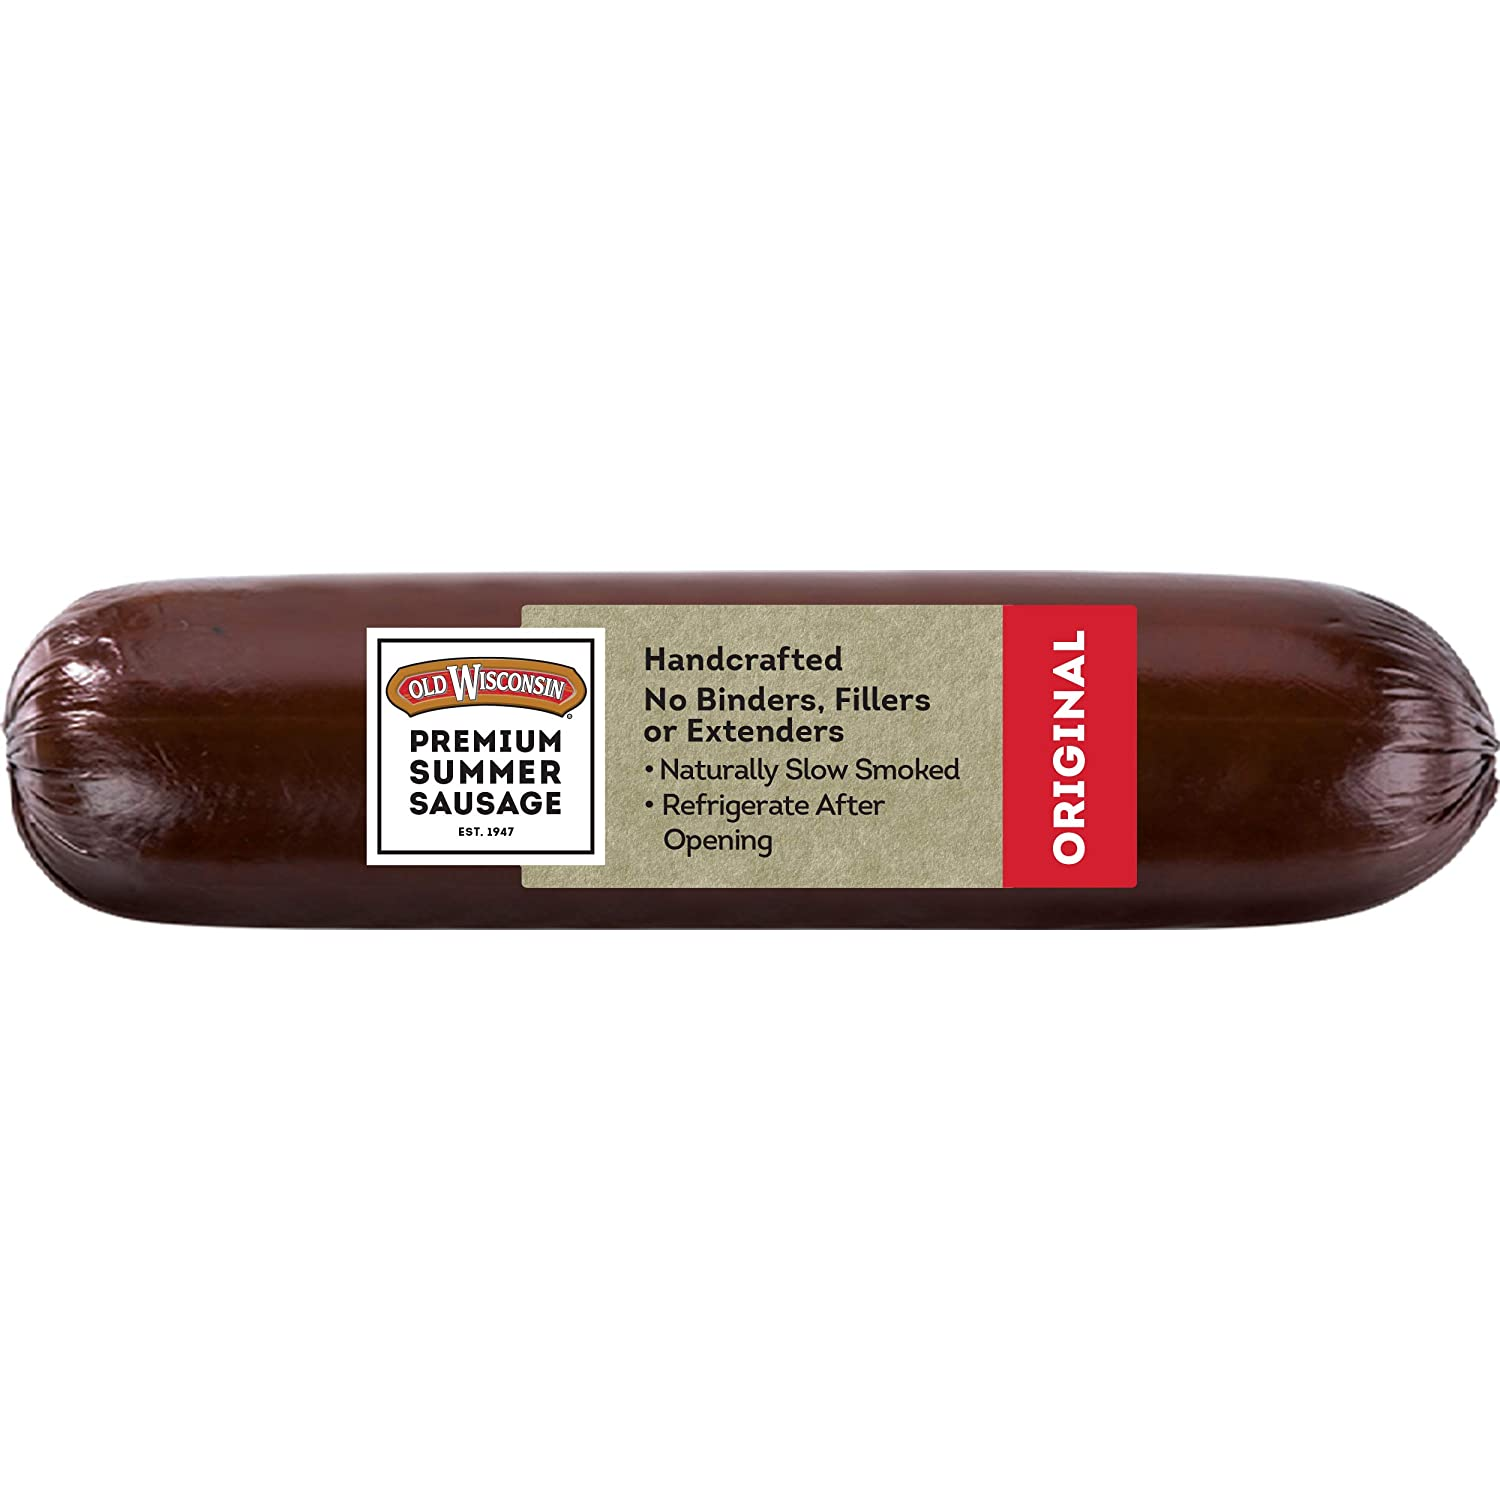 Amazon Com Old Wisconsin Premium Summer Sausage 100 Natural Meat Charcuterie Ready To Eat High Protein Low Carb Keto Gluten Free Original Flavor 16 Ounce Jerky And Dried Meats Grocery Gourmet Food